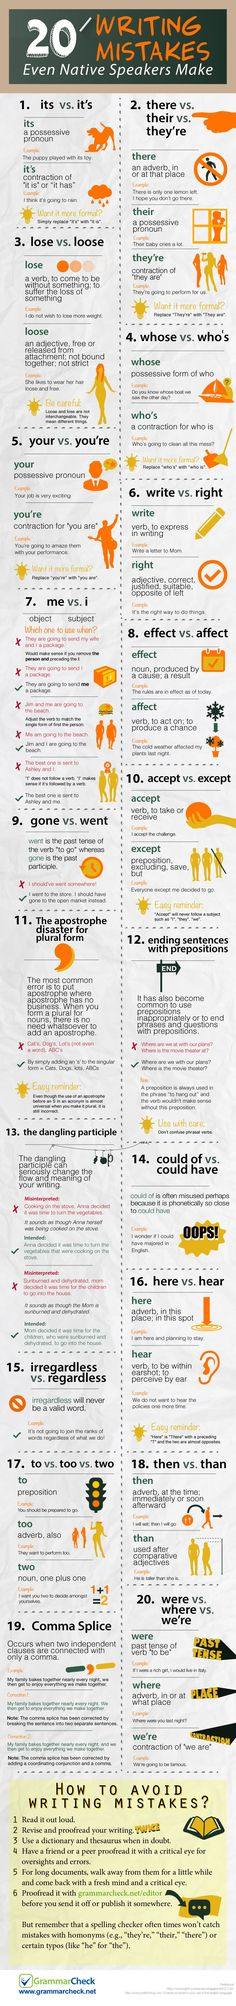 20 Writing Mistakes Even Native Speakers Make (Infographic)